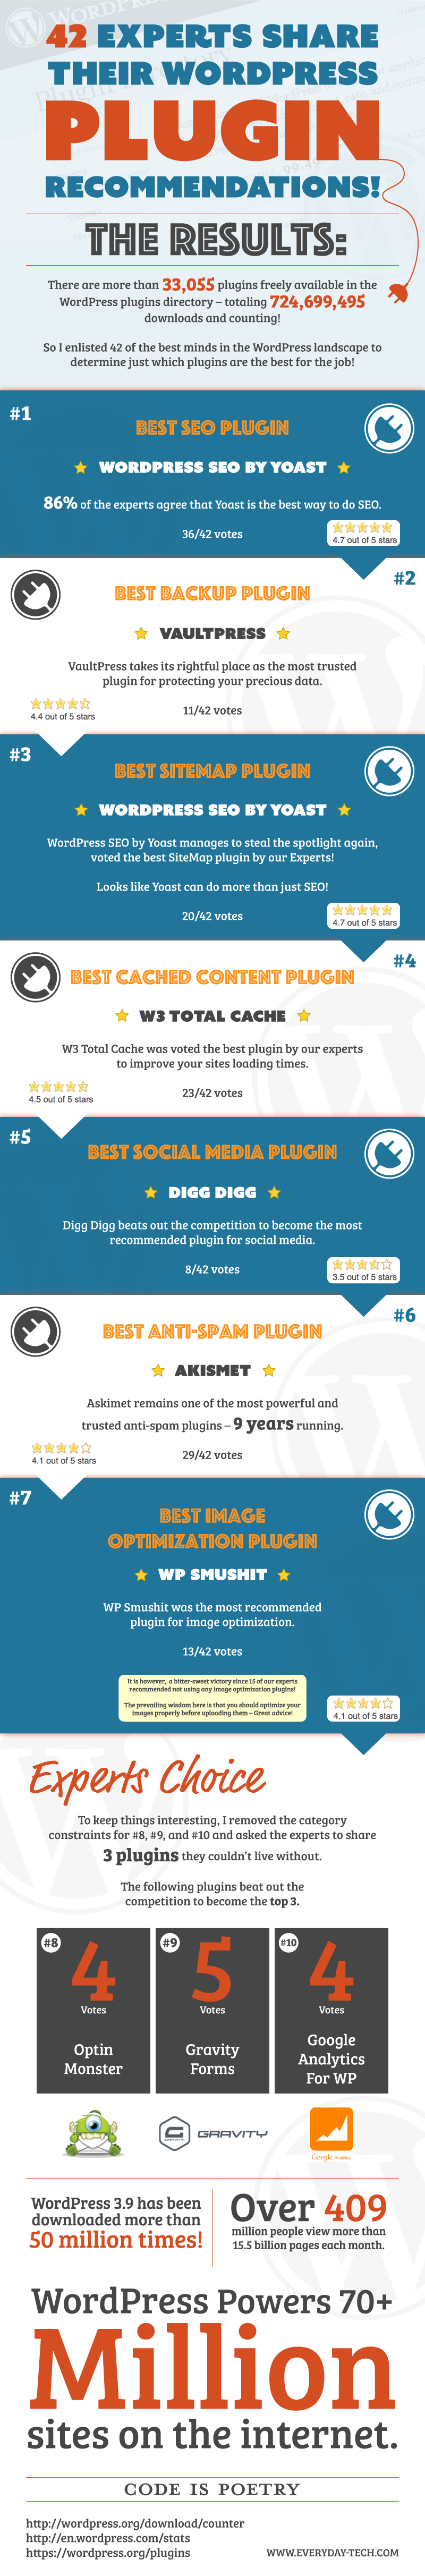 wordpress plugins top infographic